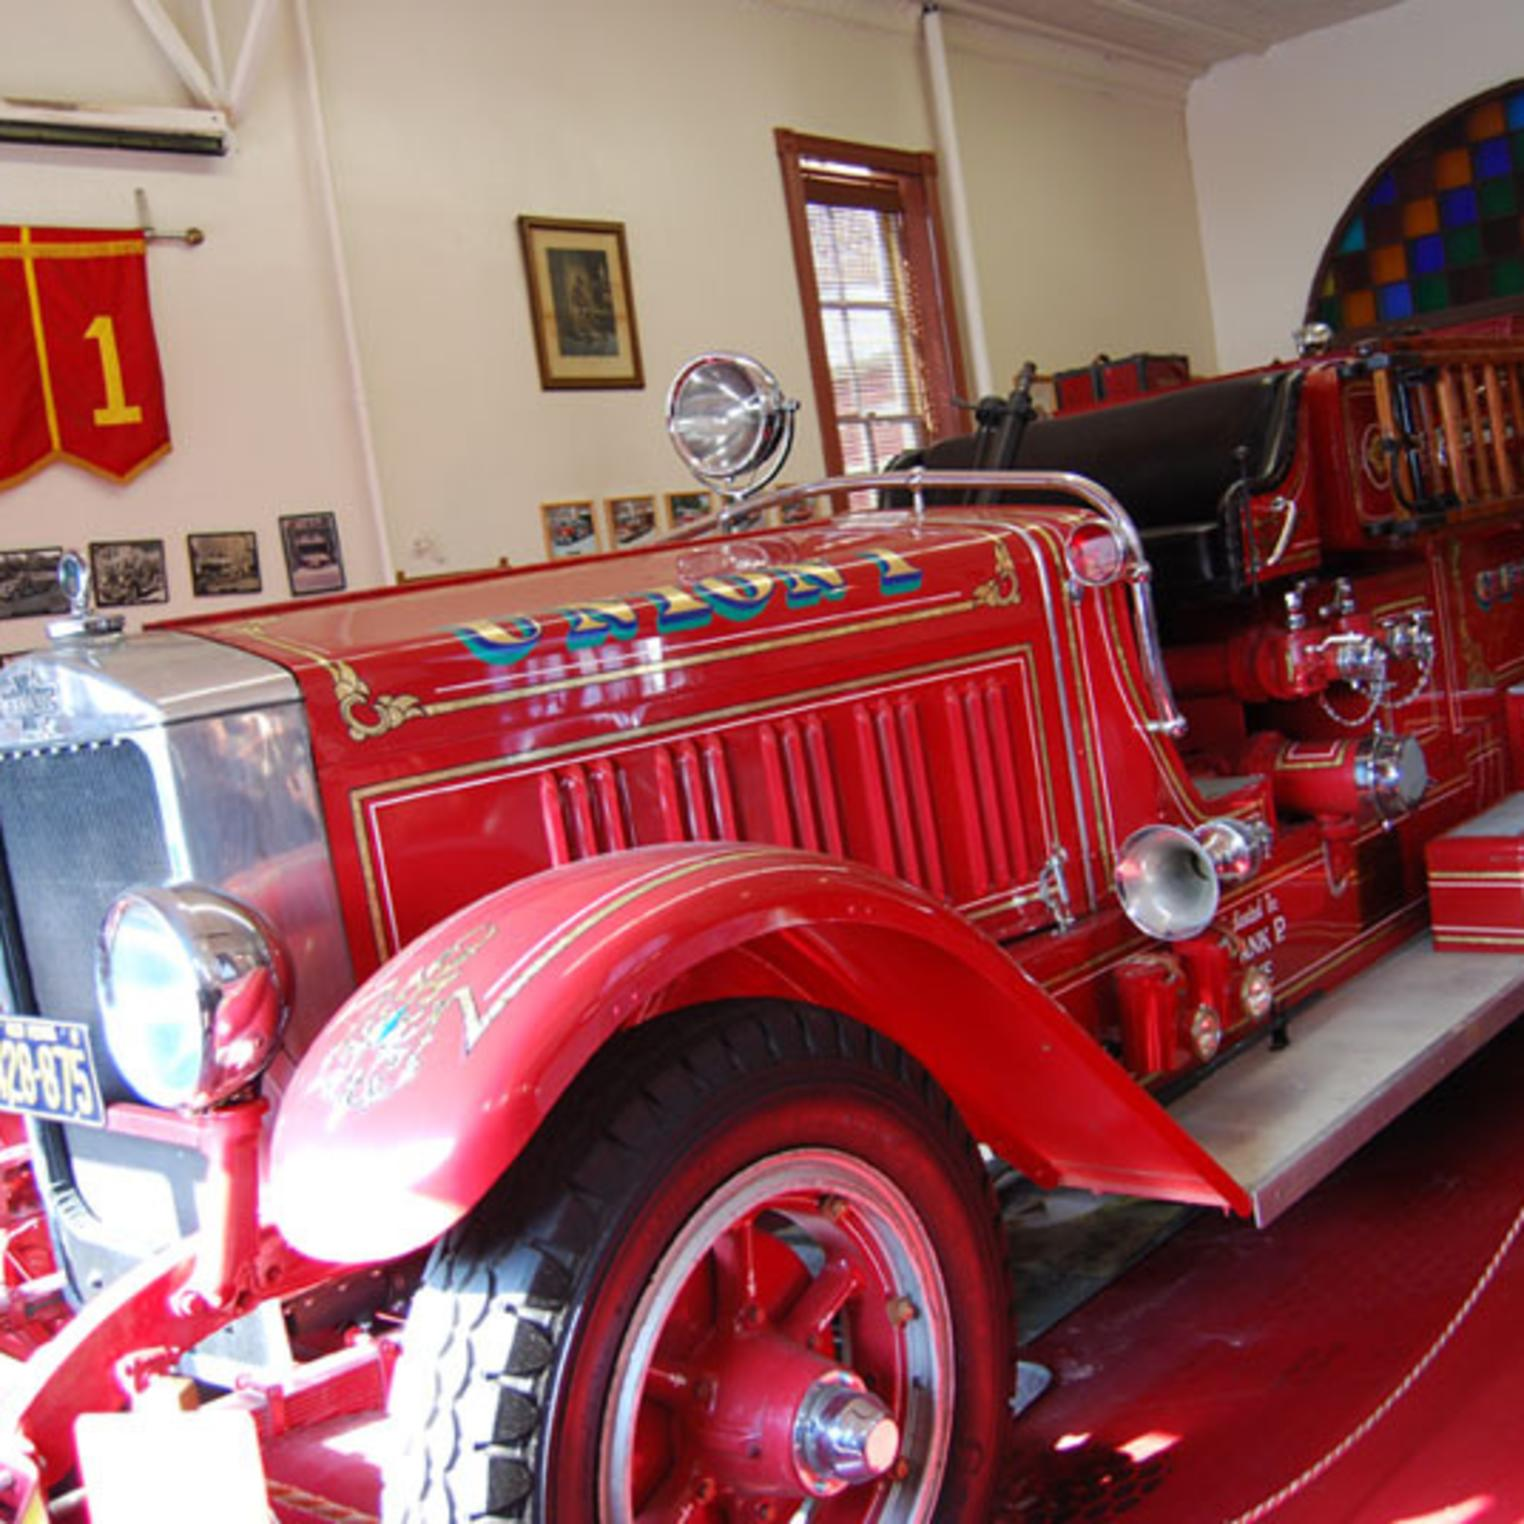 Firetruck at the Union Fire Company No. 1 Museum